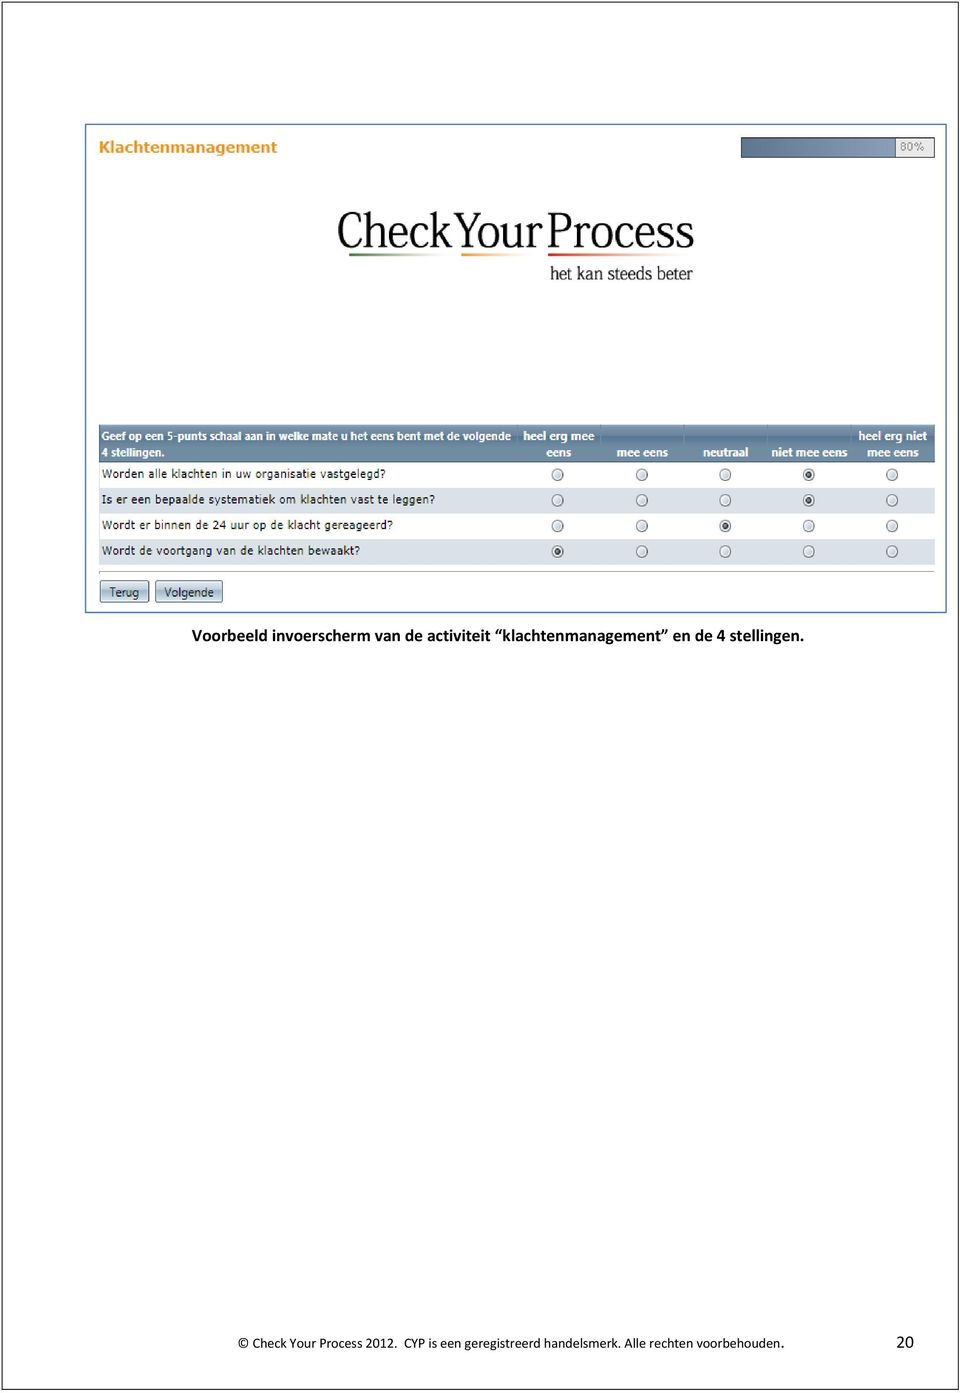 Check Your Process 2012.